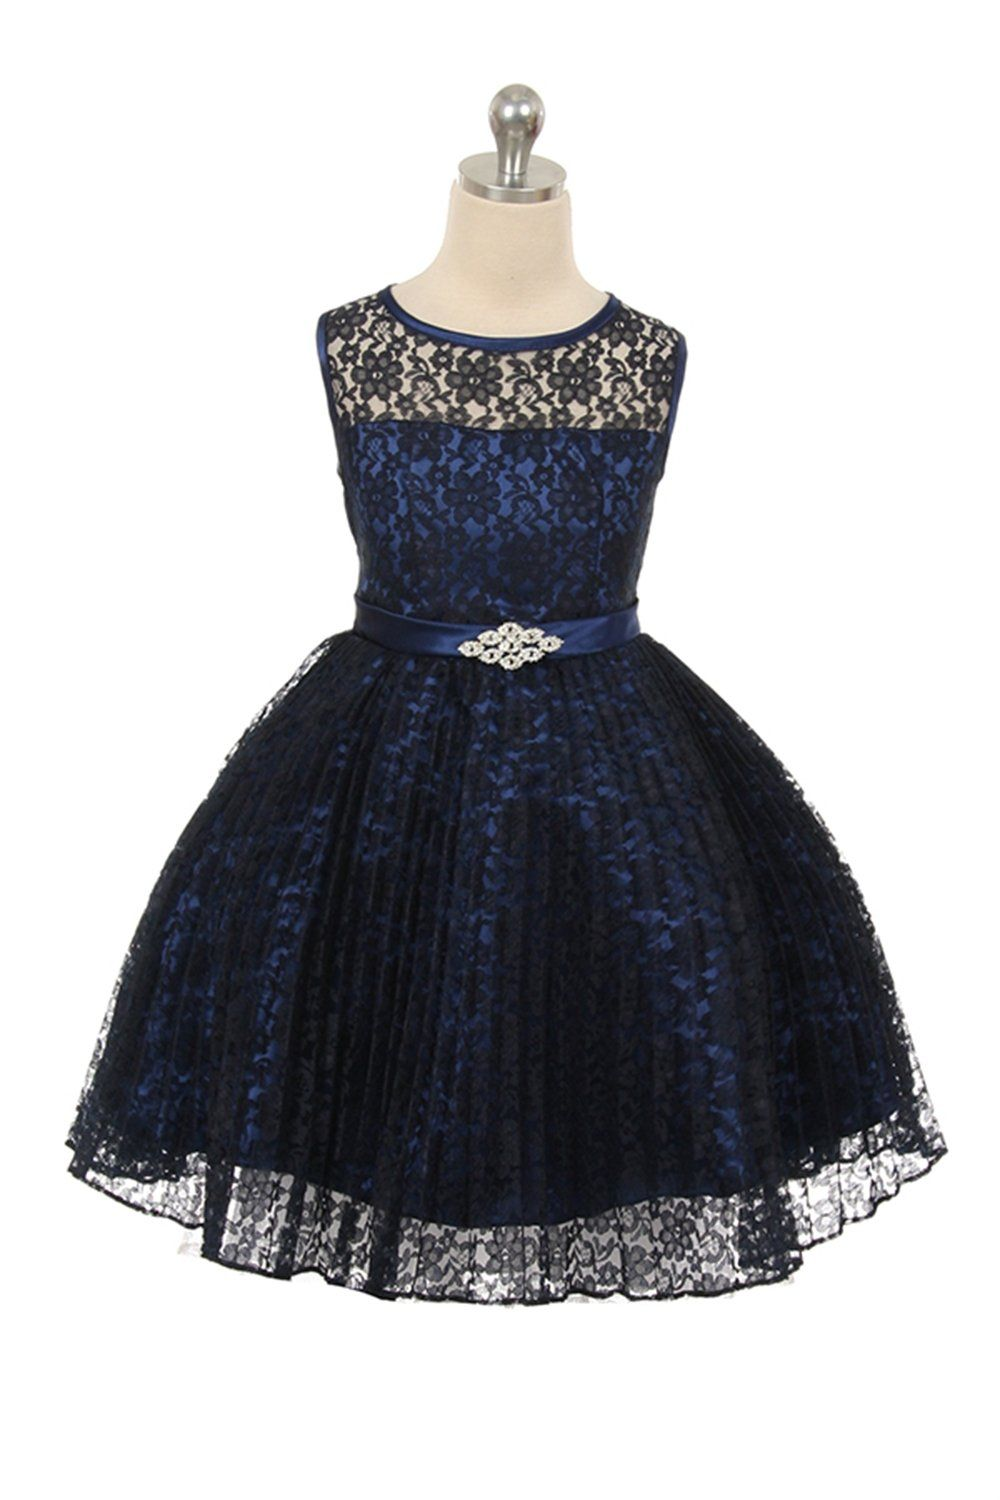 Navy blue lace pleated flower girl dresses dresses pinterest navy blue lace pleated flower girl dresses ombrellifo Image collections